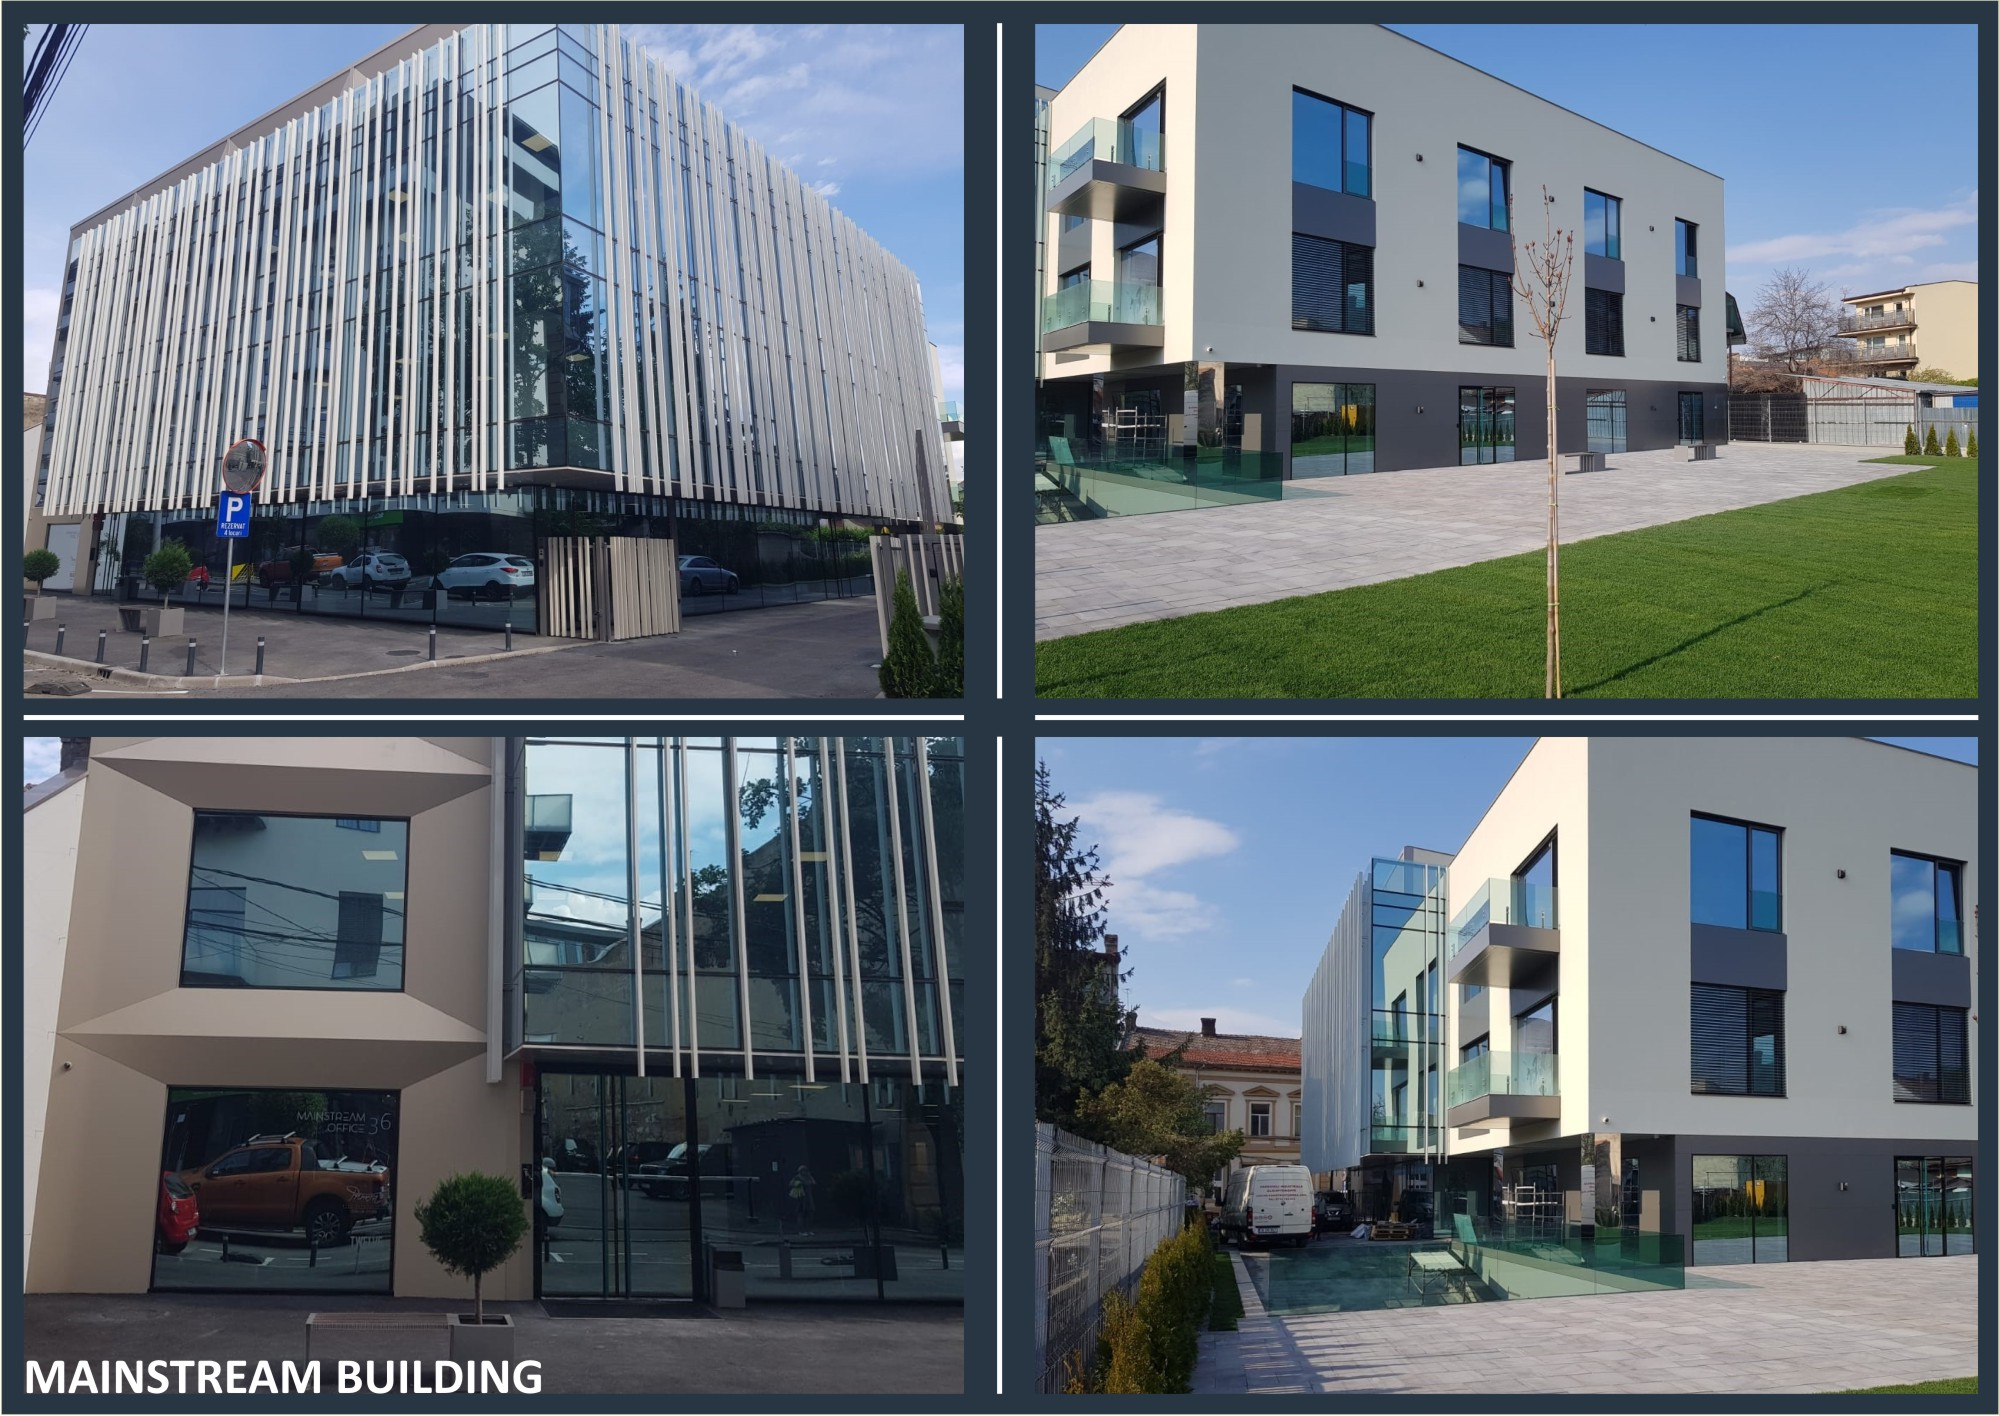 CLUJ-NAPOCA BECOMES THE FIRST CITY OUTSIDE BUCHAREST  TO REACH A MODERN OFFICE STOCK OF 300,000 SQ M GLA